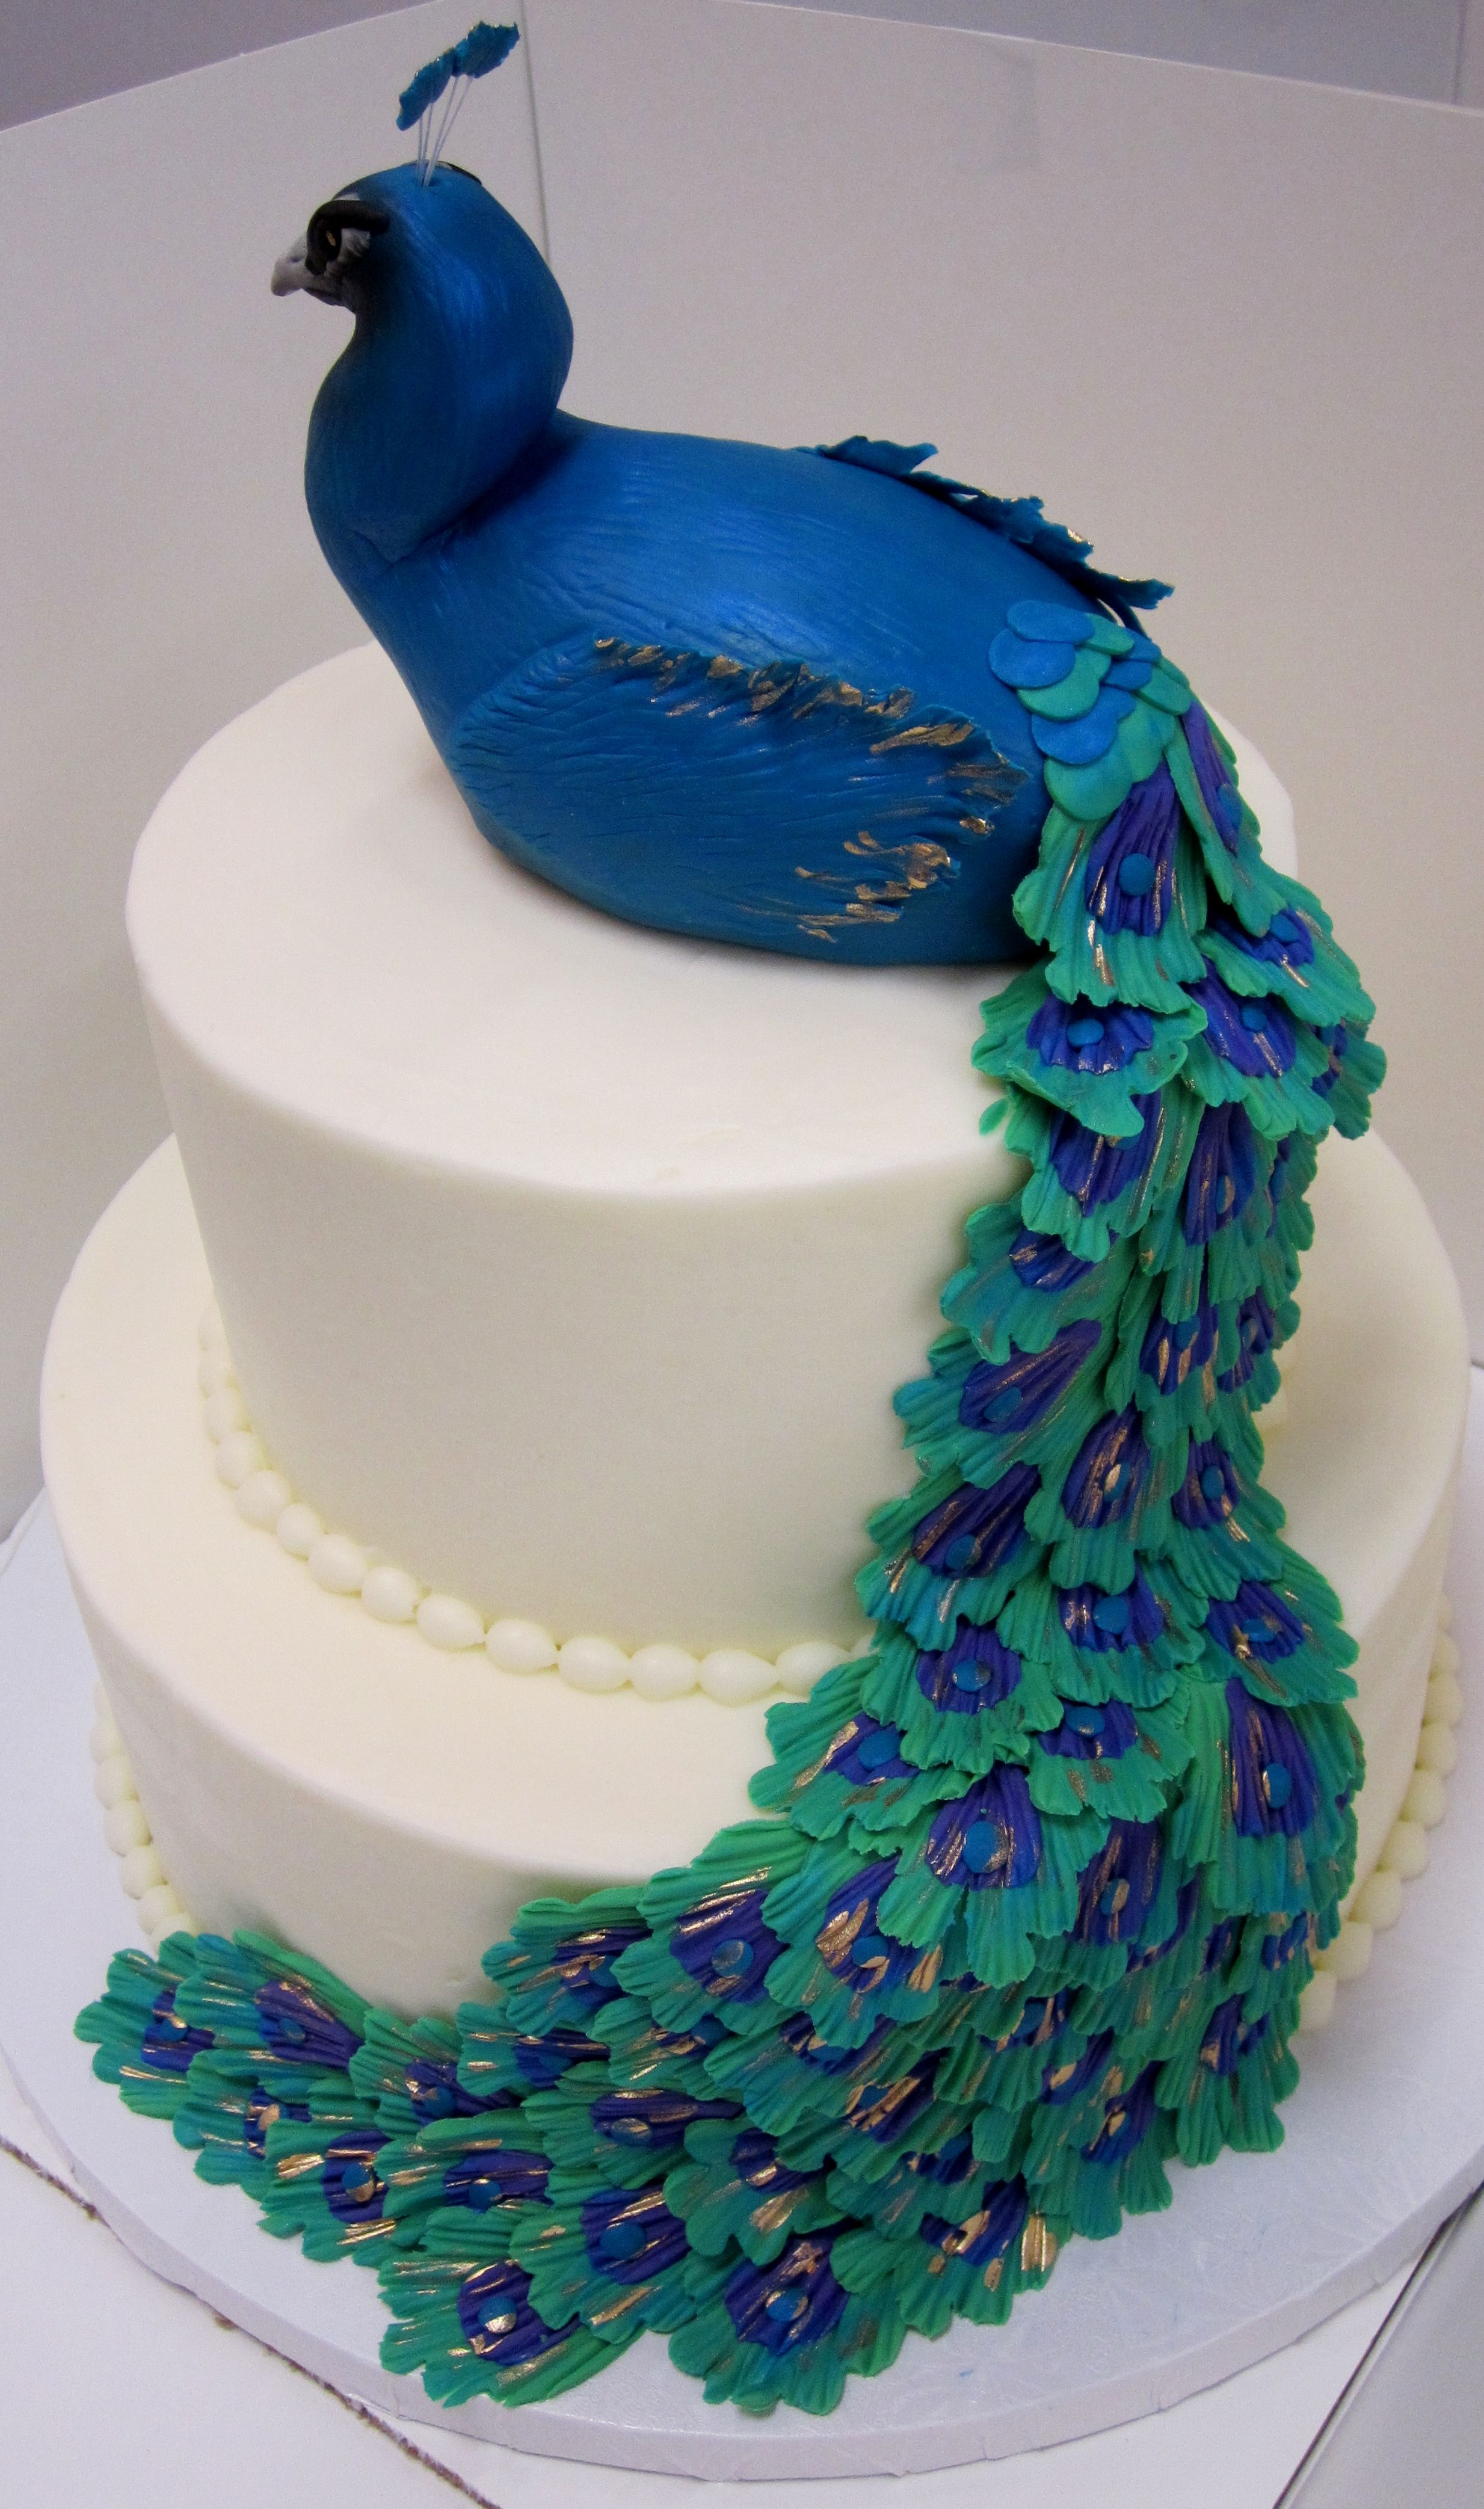 Glamorous peacock cake for any birthday or special occassion Made